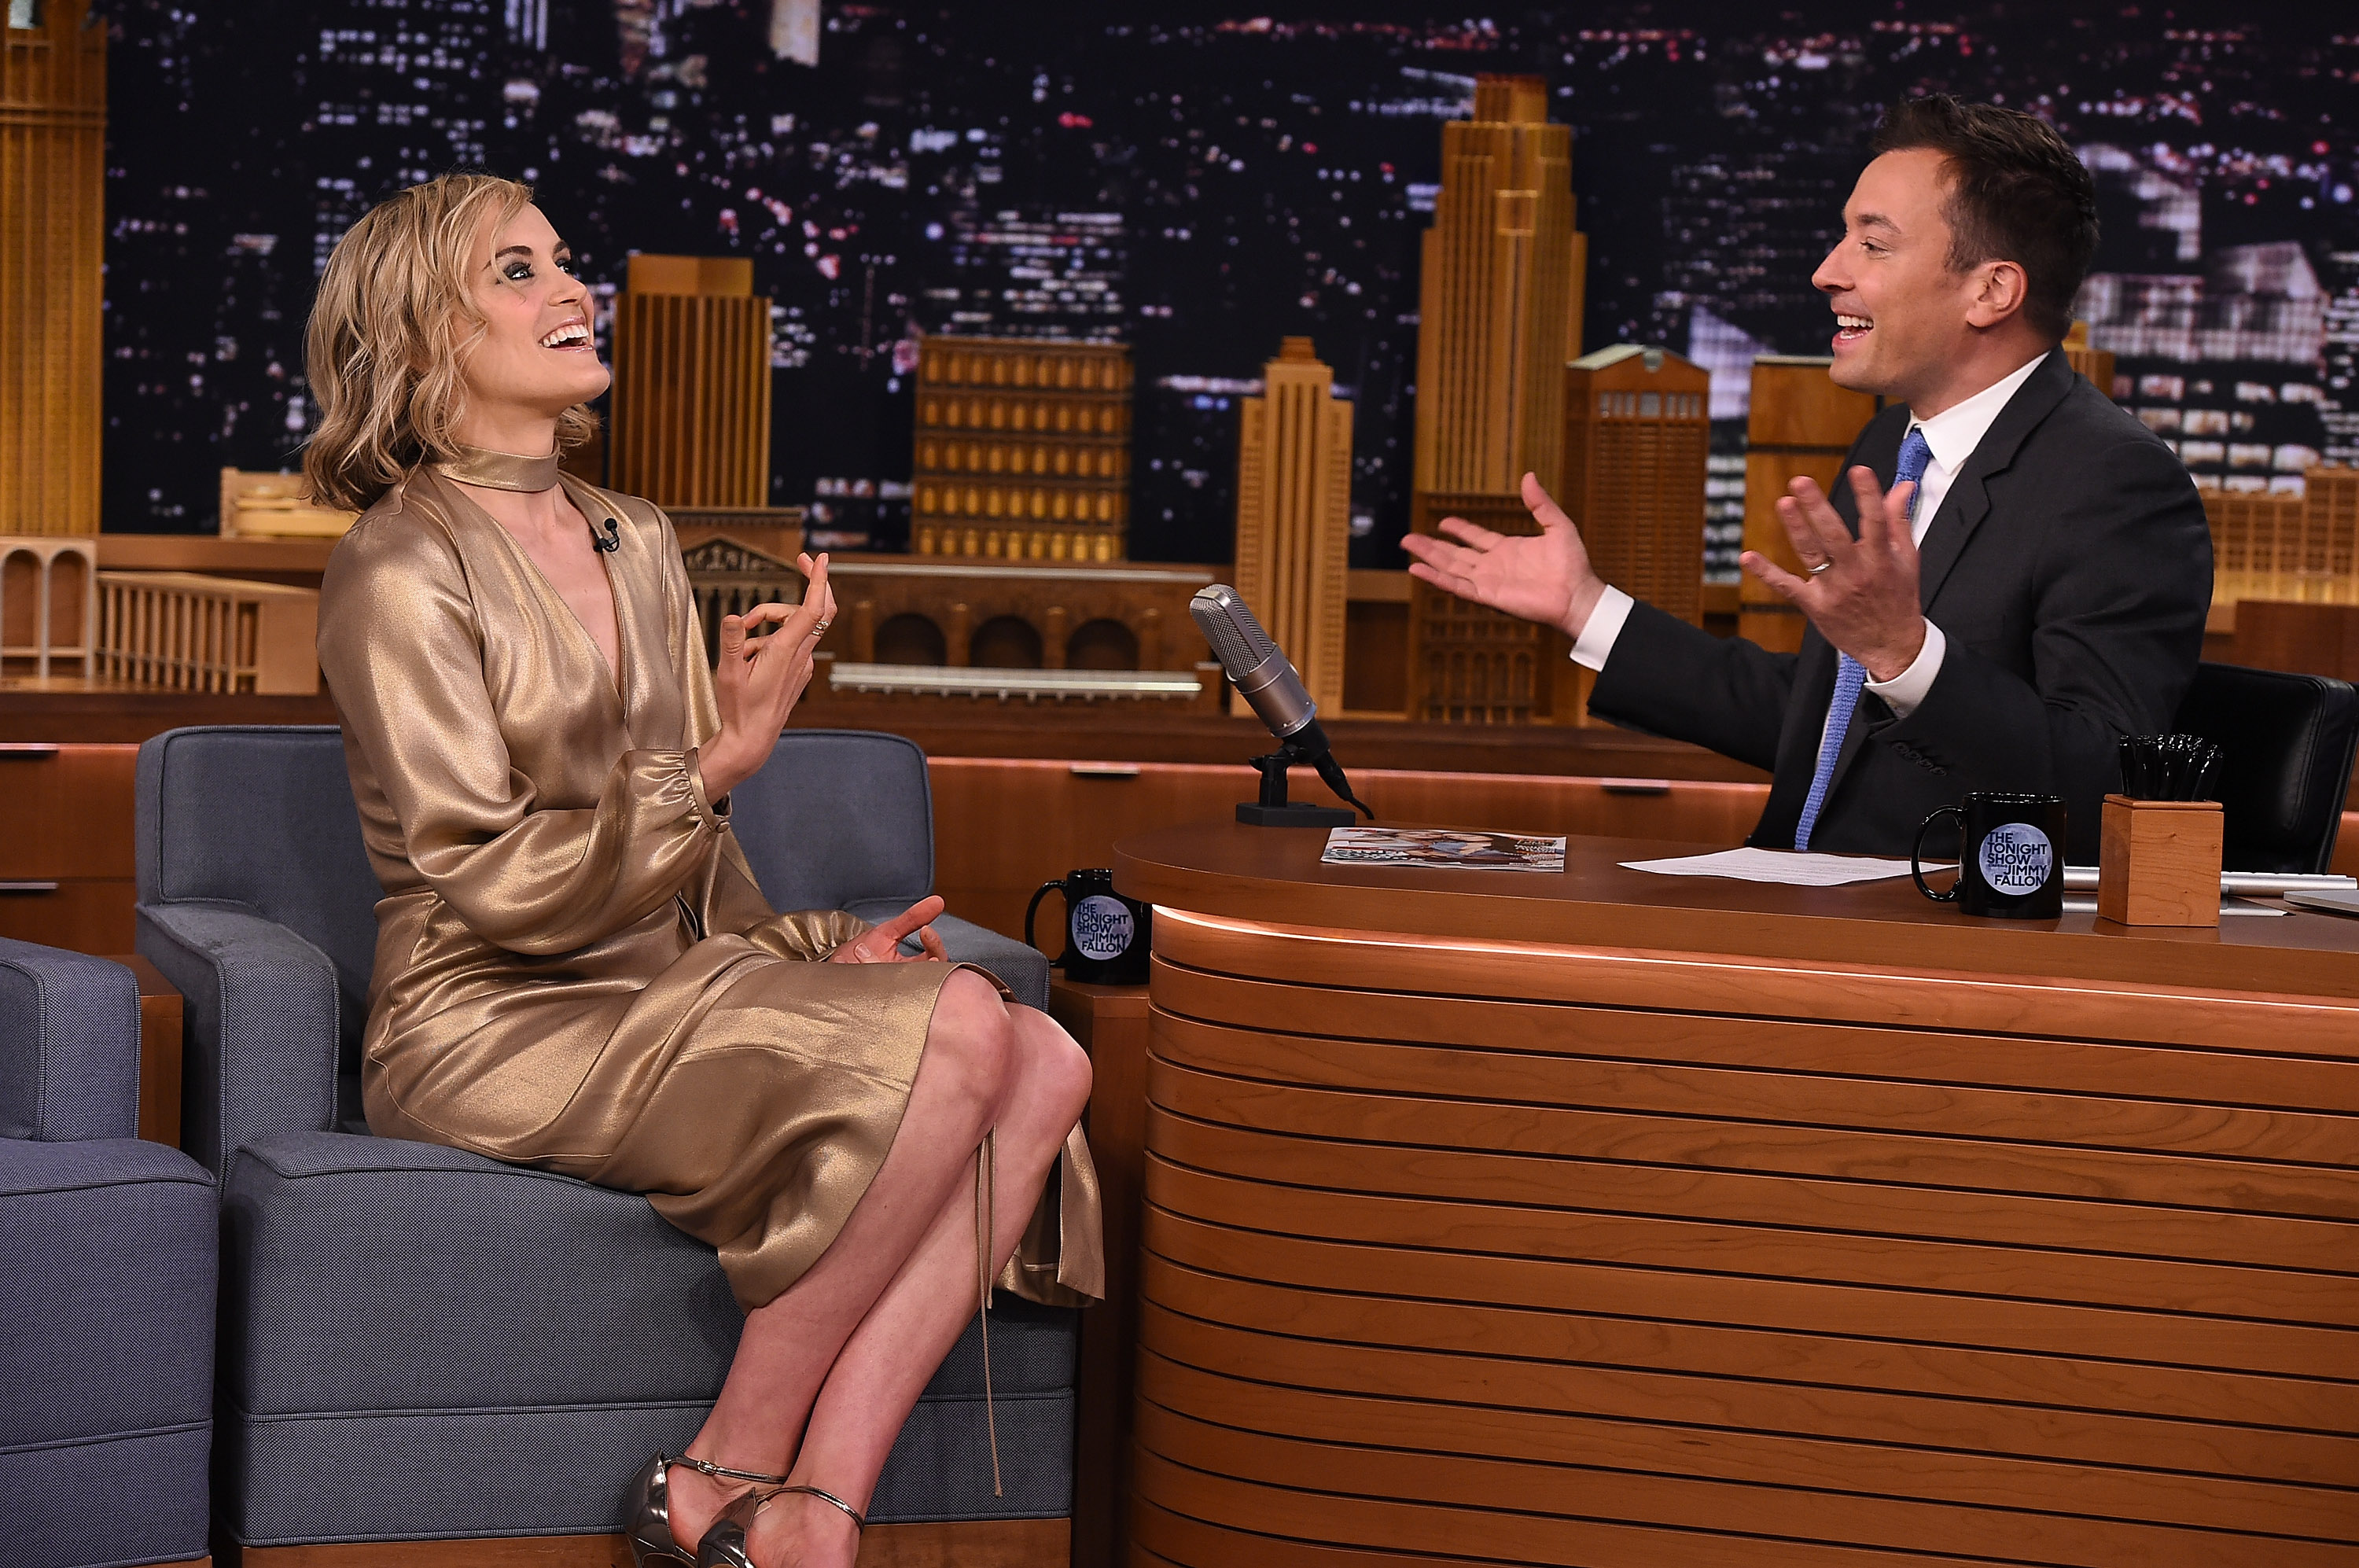 Taylor Schilling visits  The Tonight Show Starring Jimmy Fallon  at Rockefeller Center on June 15, 2015 in New York City.